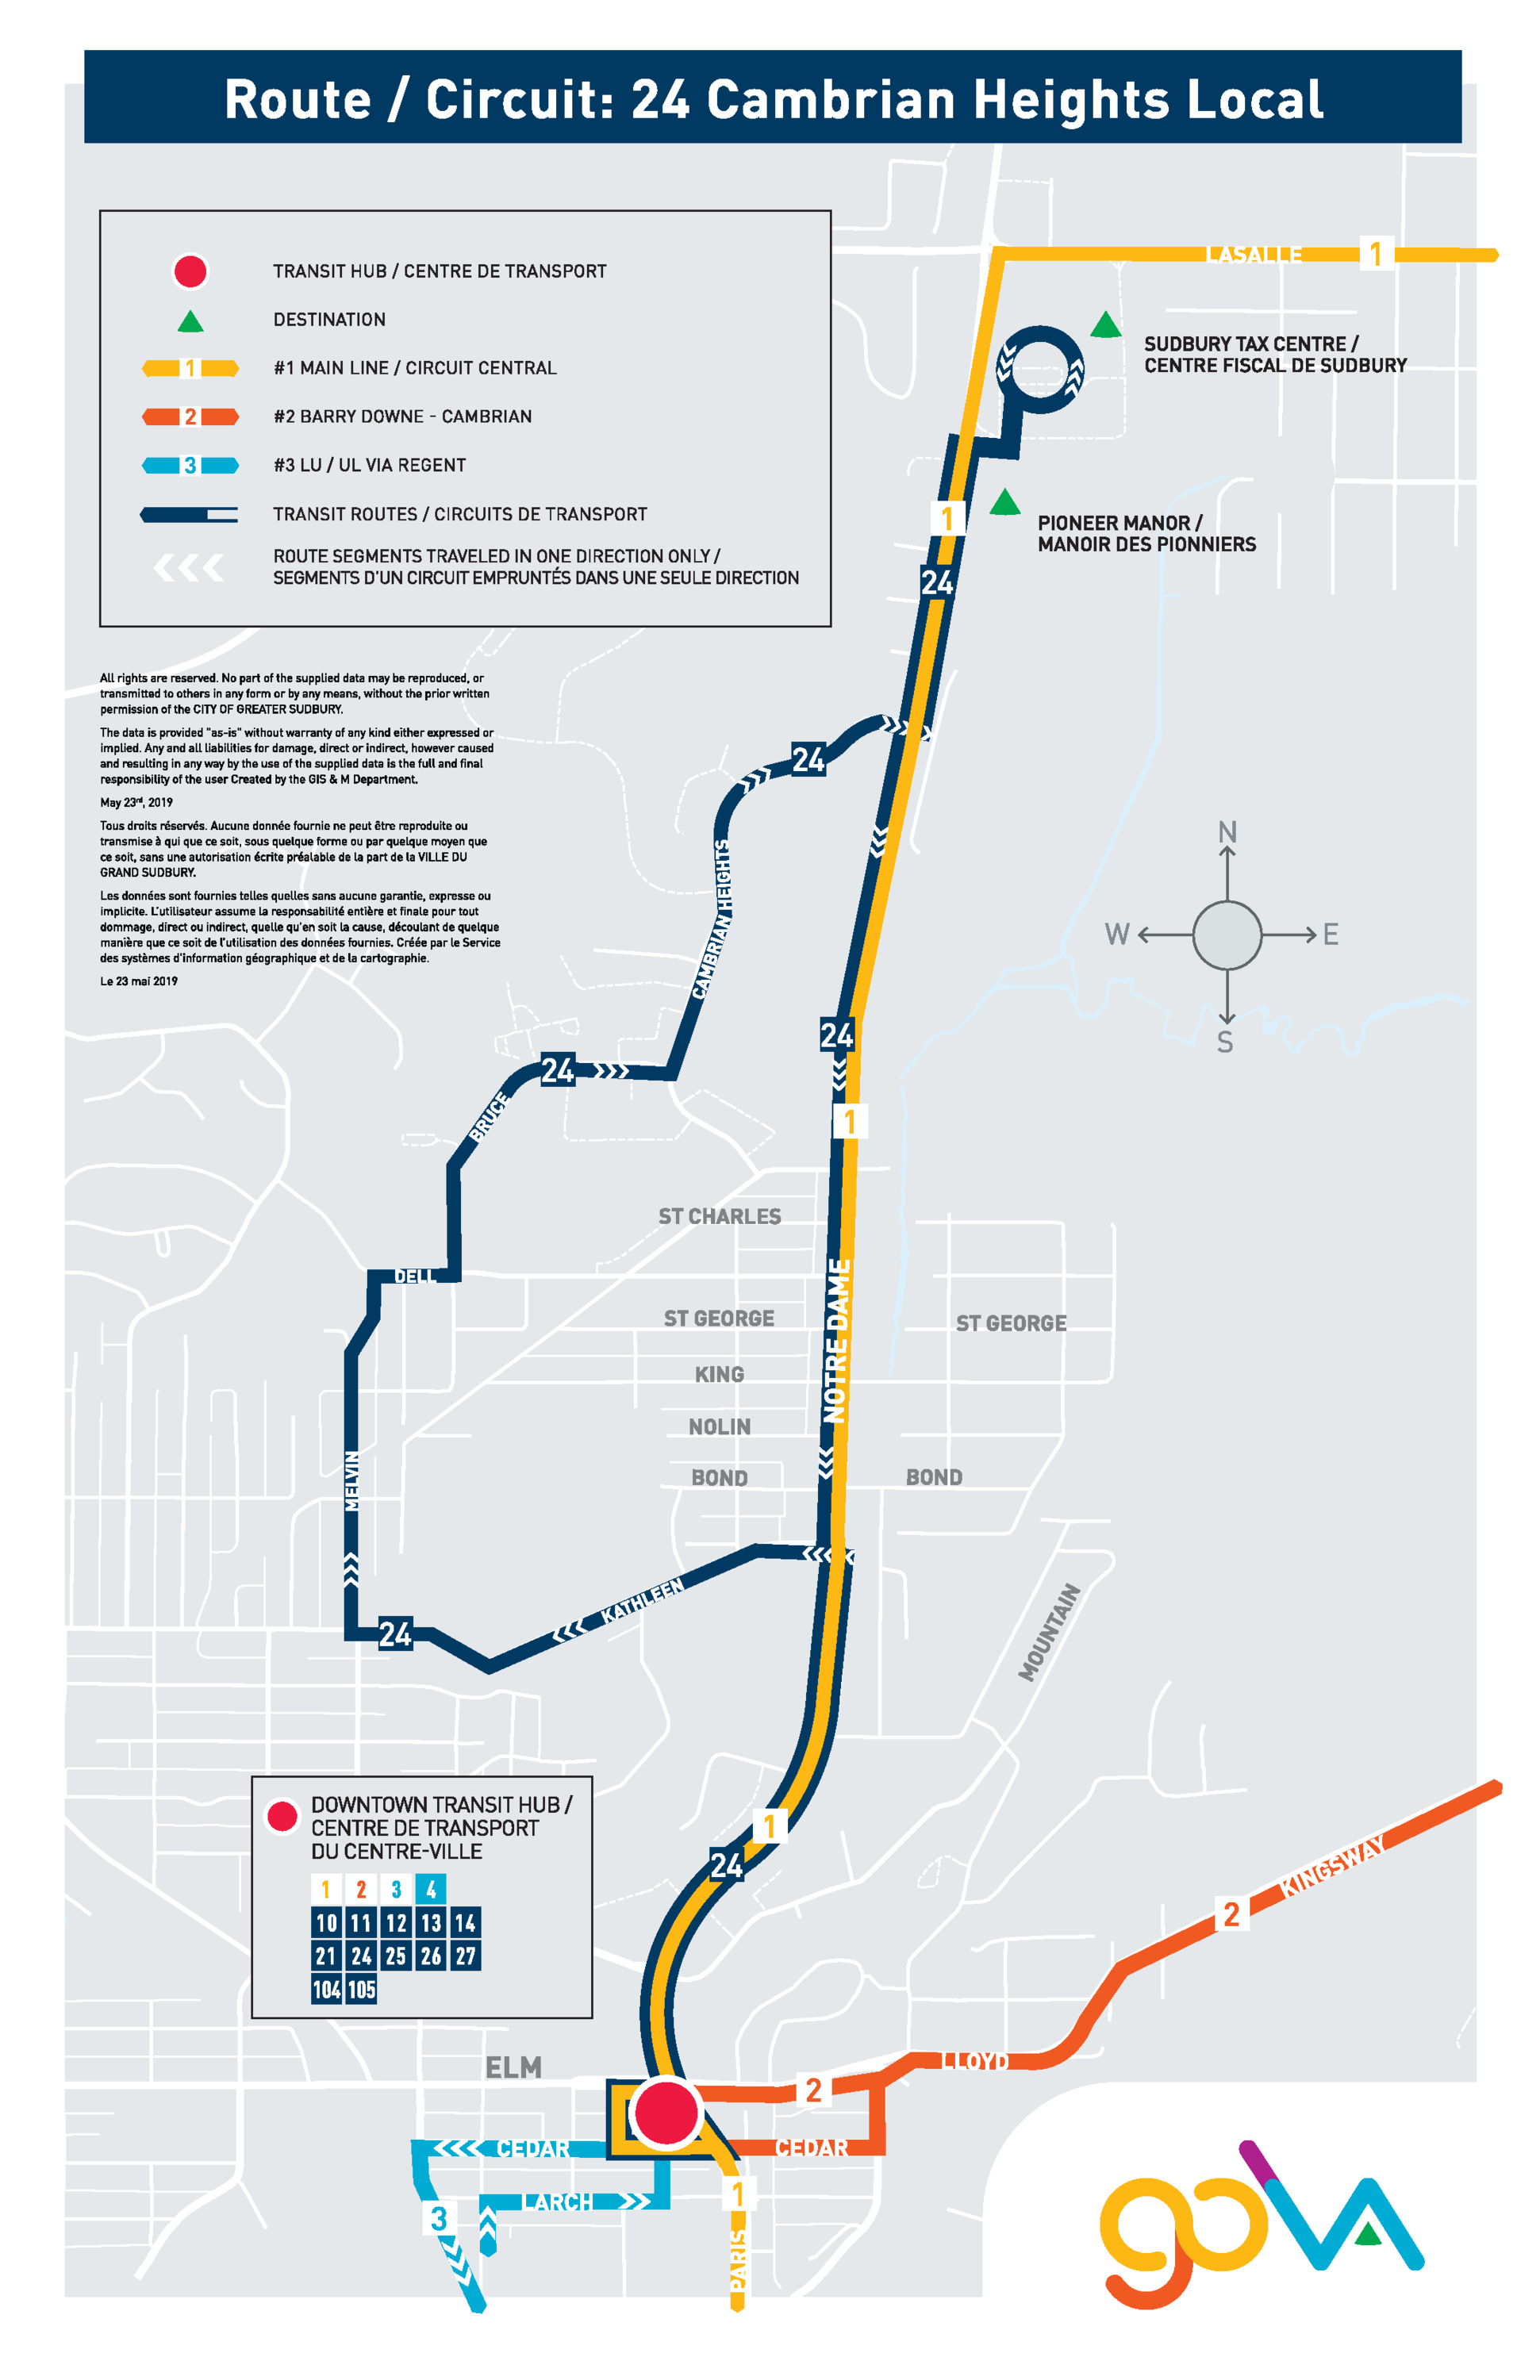 GOVA Routes and Schedules